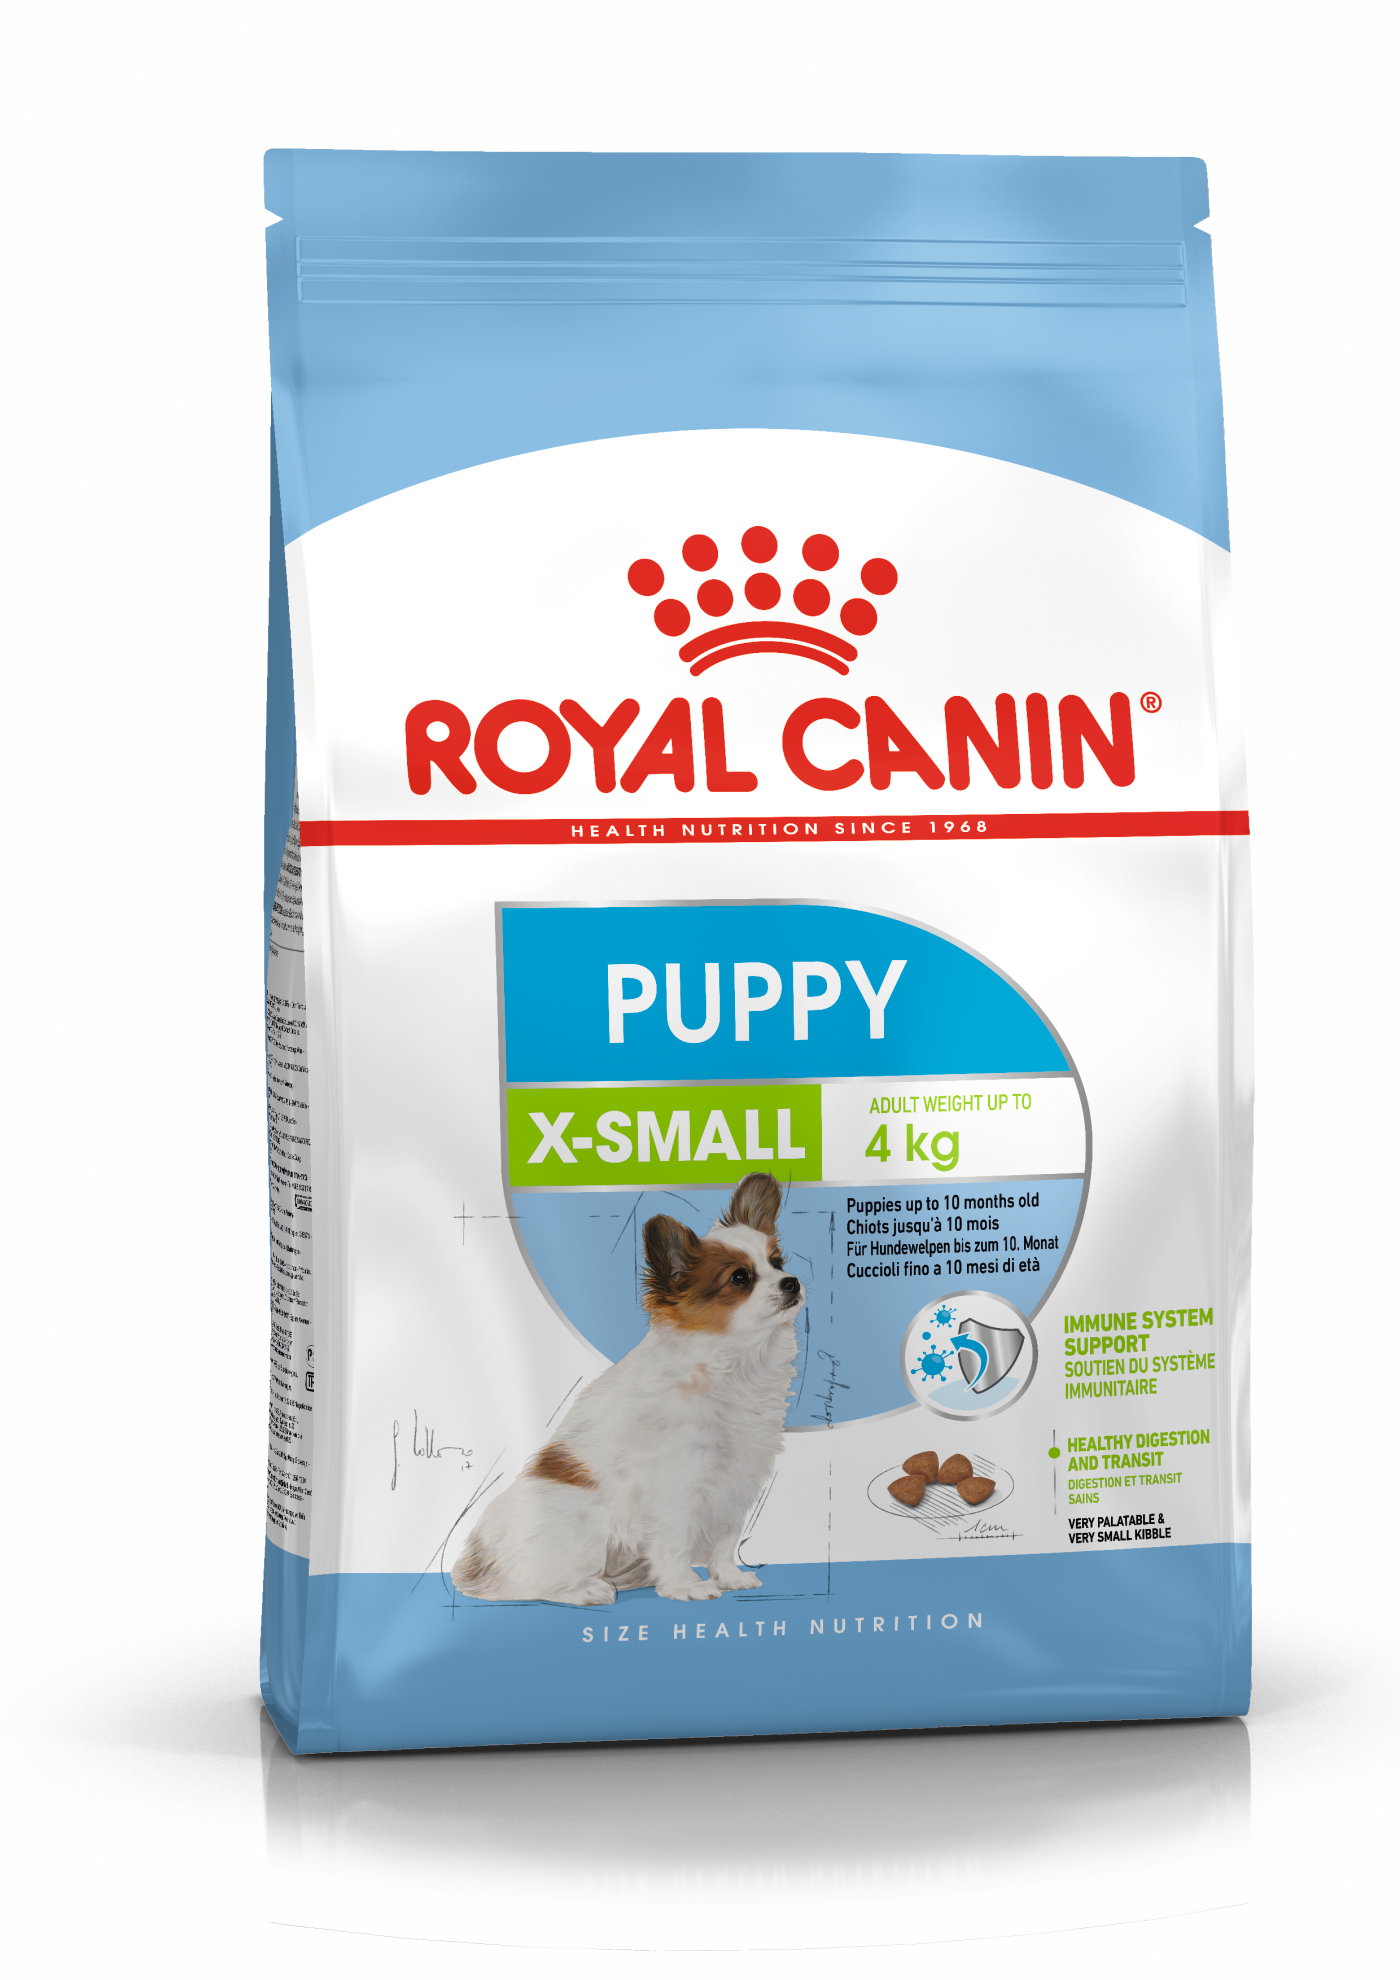 RC 252650 Xsmall Puppy 500g